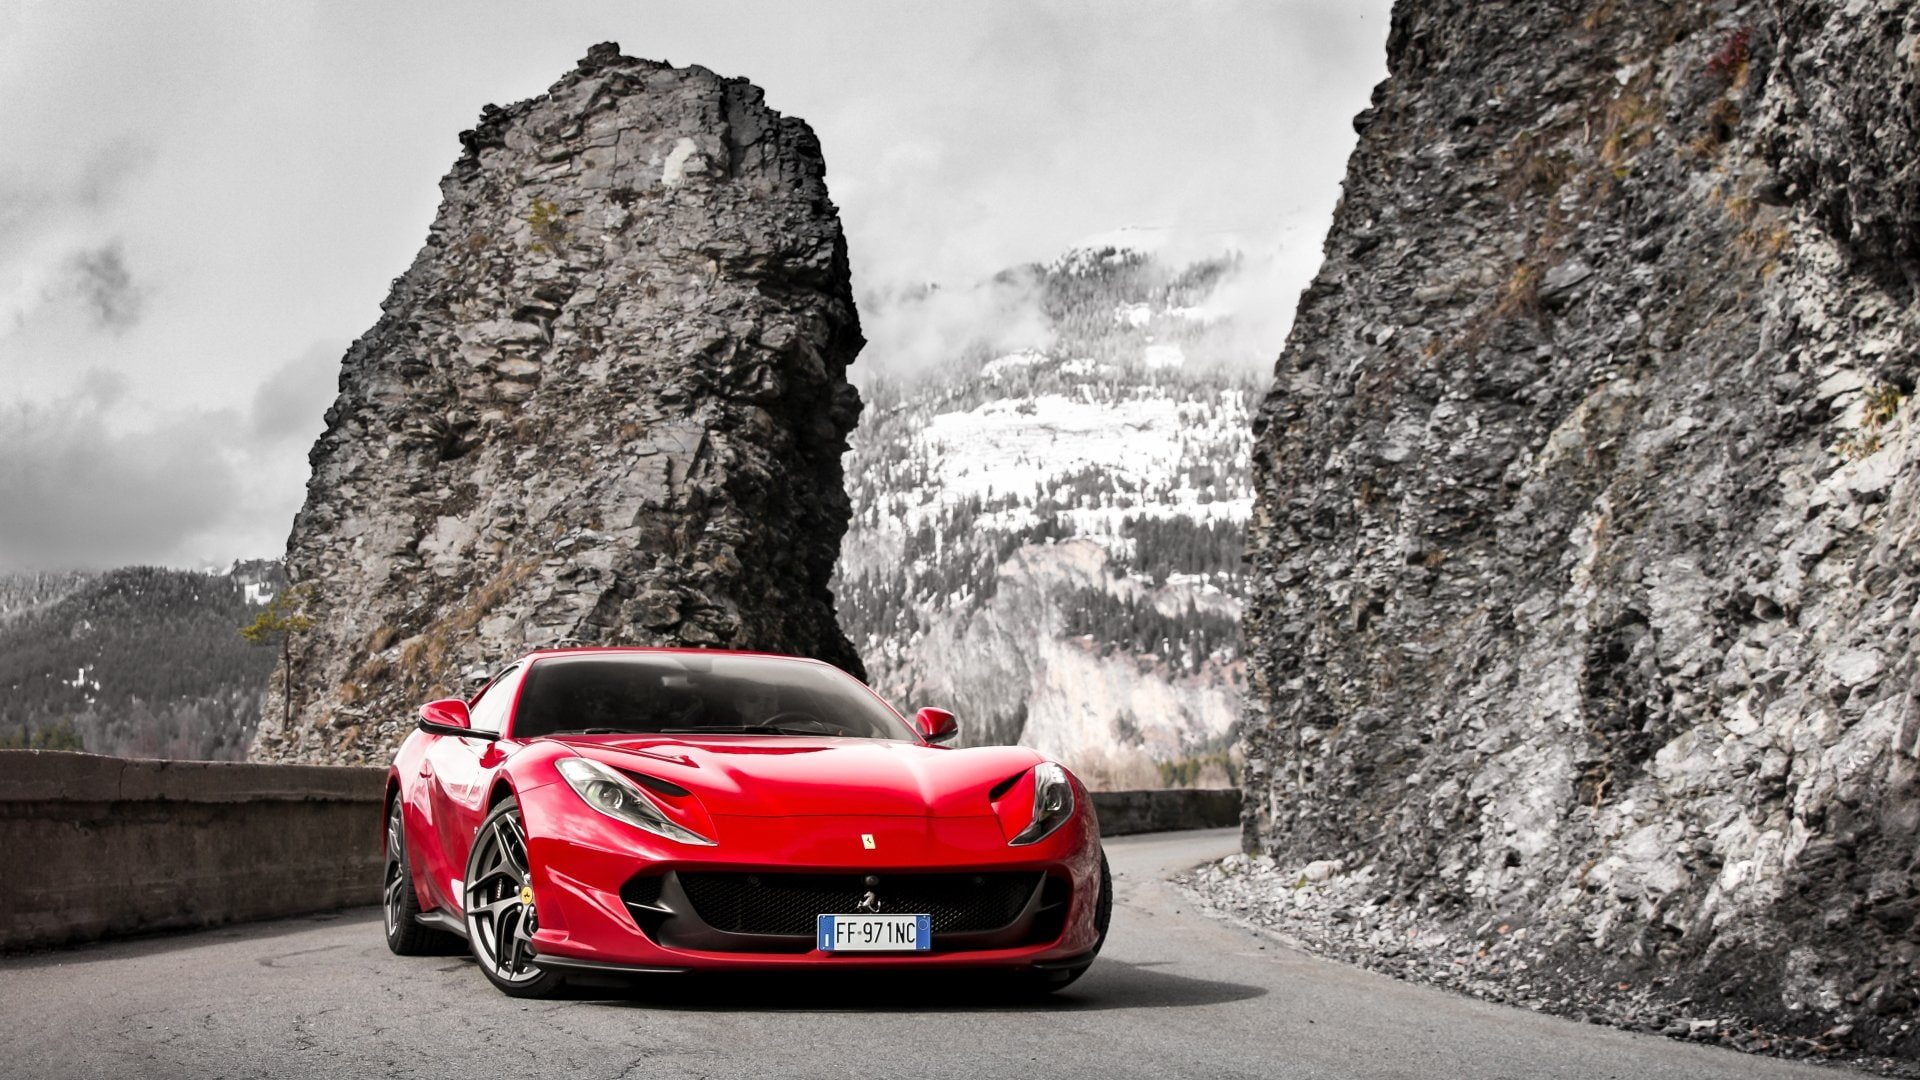 Hd Wallpaper Ferrari Ferrari 812 Superfast Car Red Car Sport